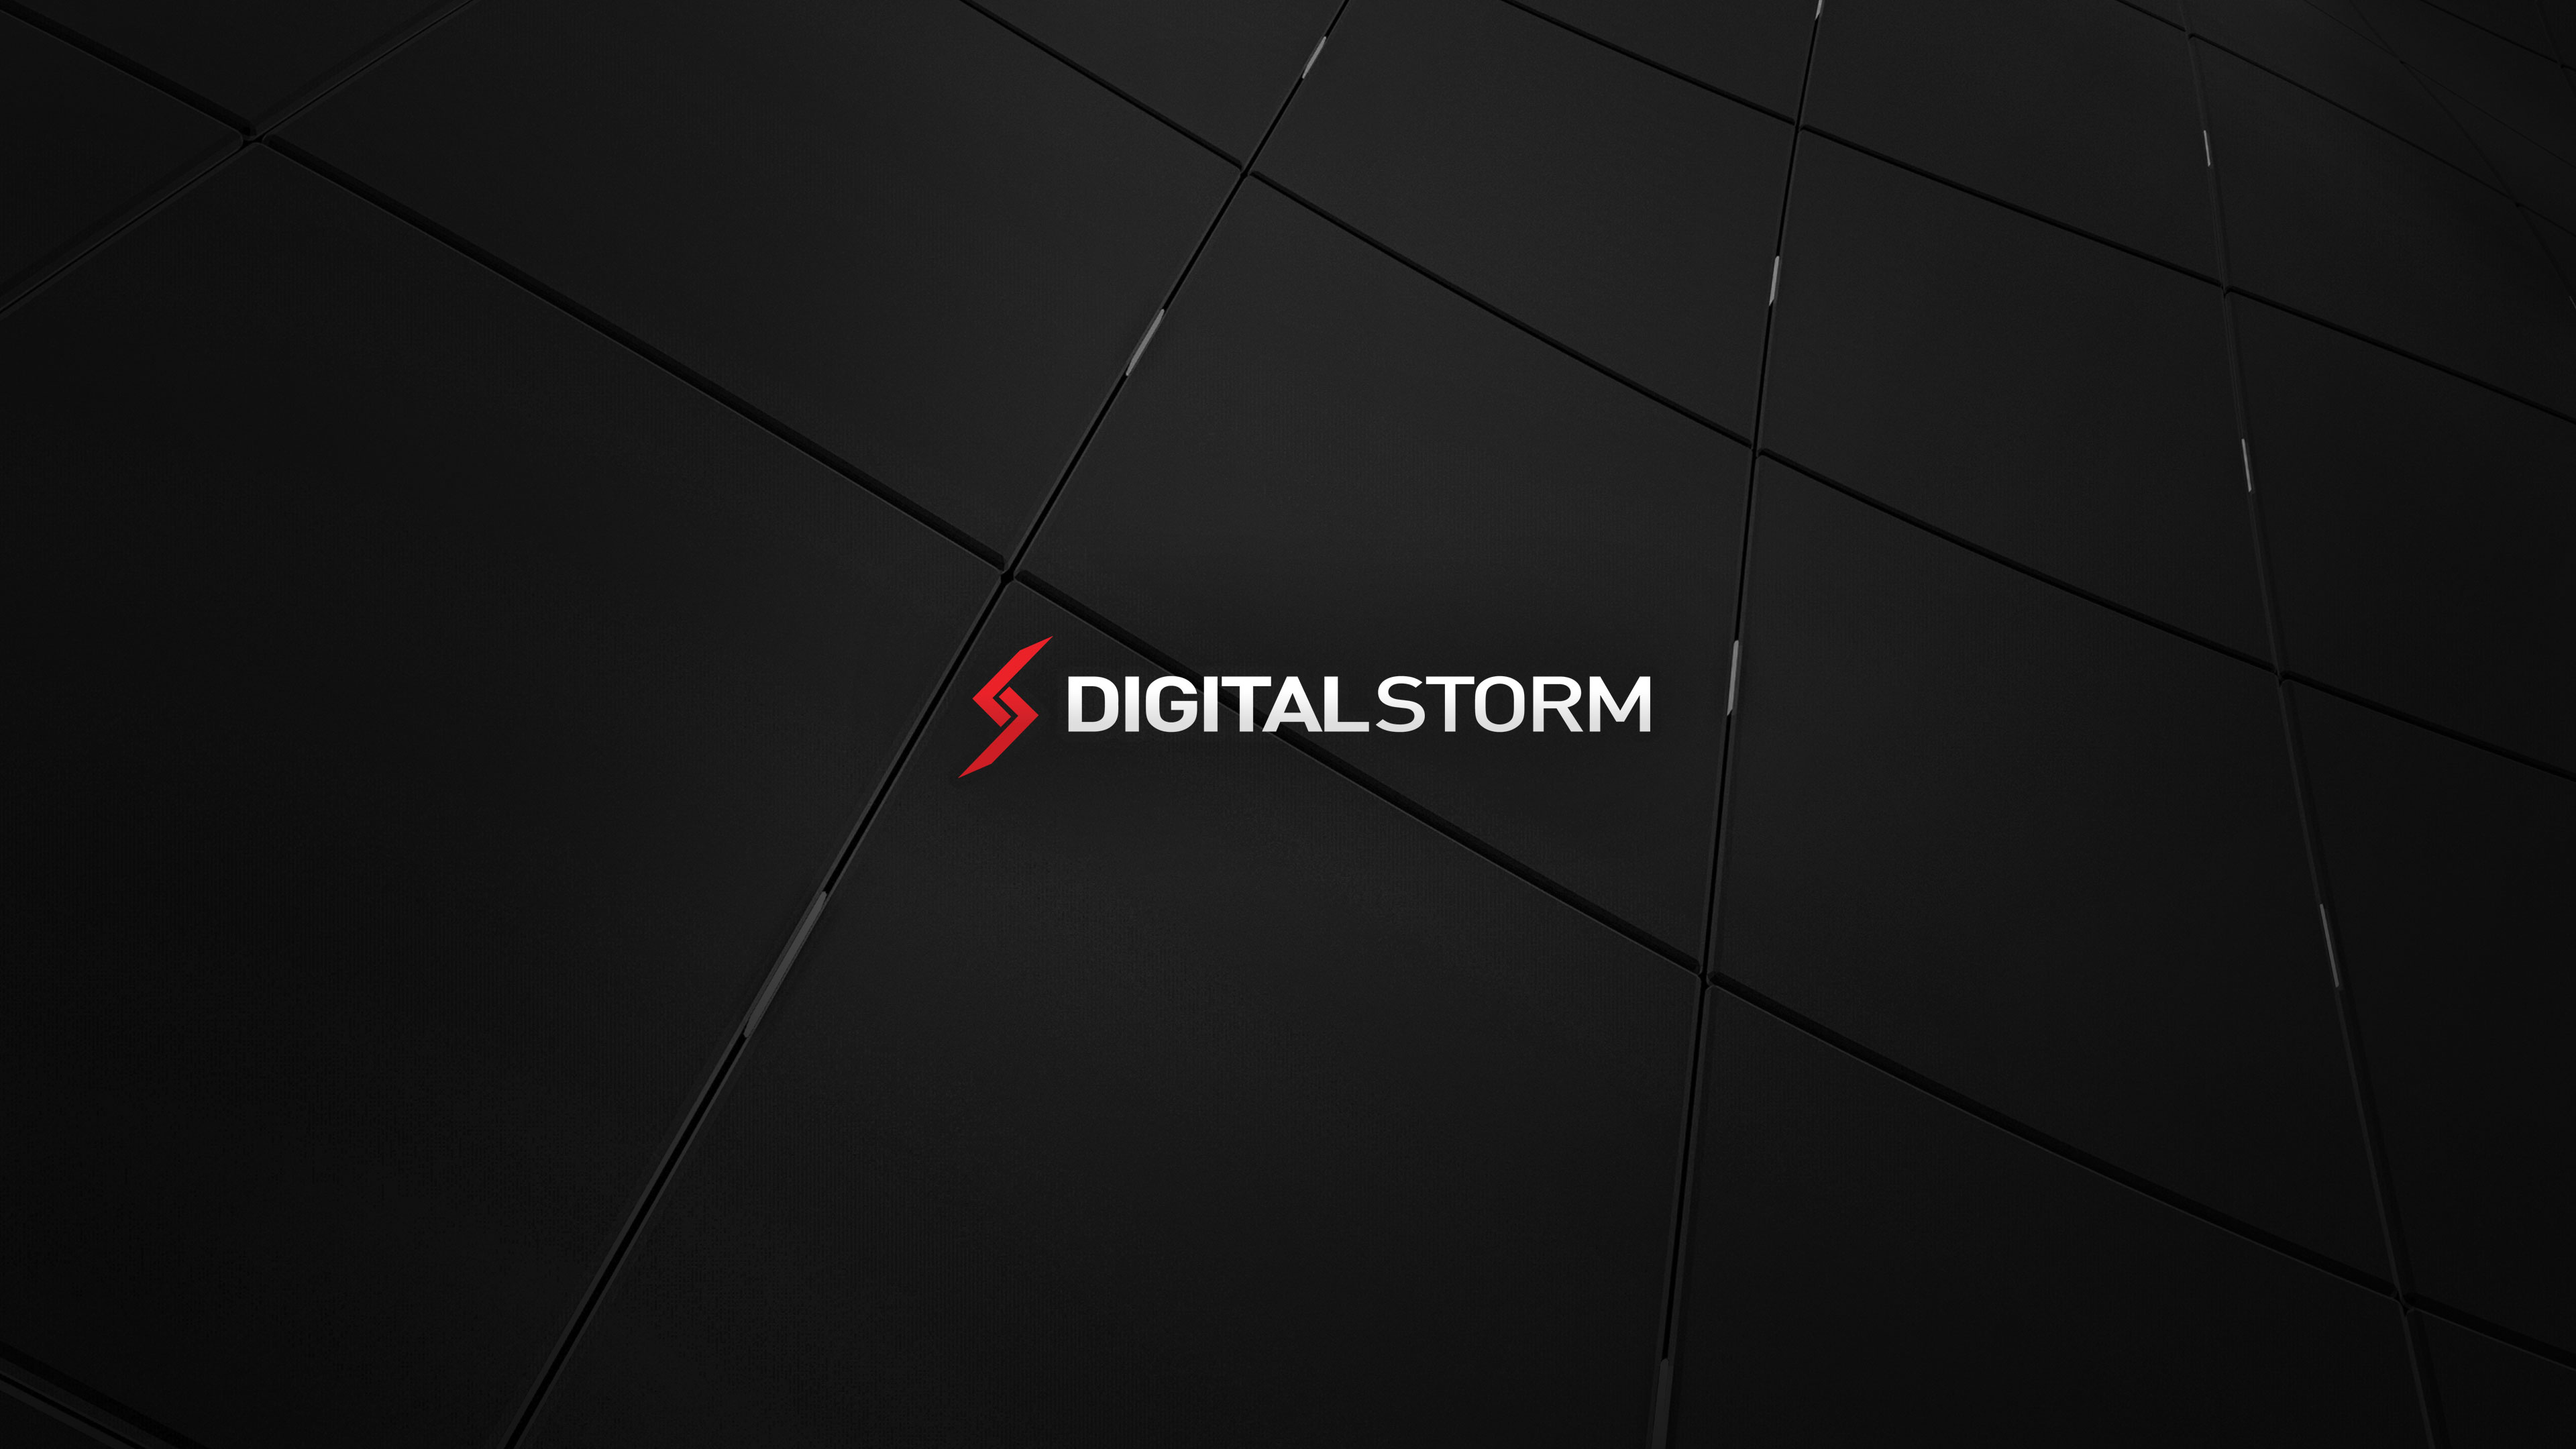 digital storm wallpapers 1920x1200 - photo #3